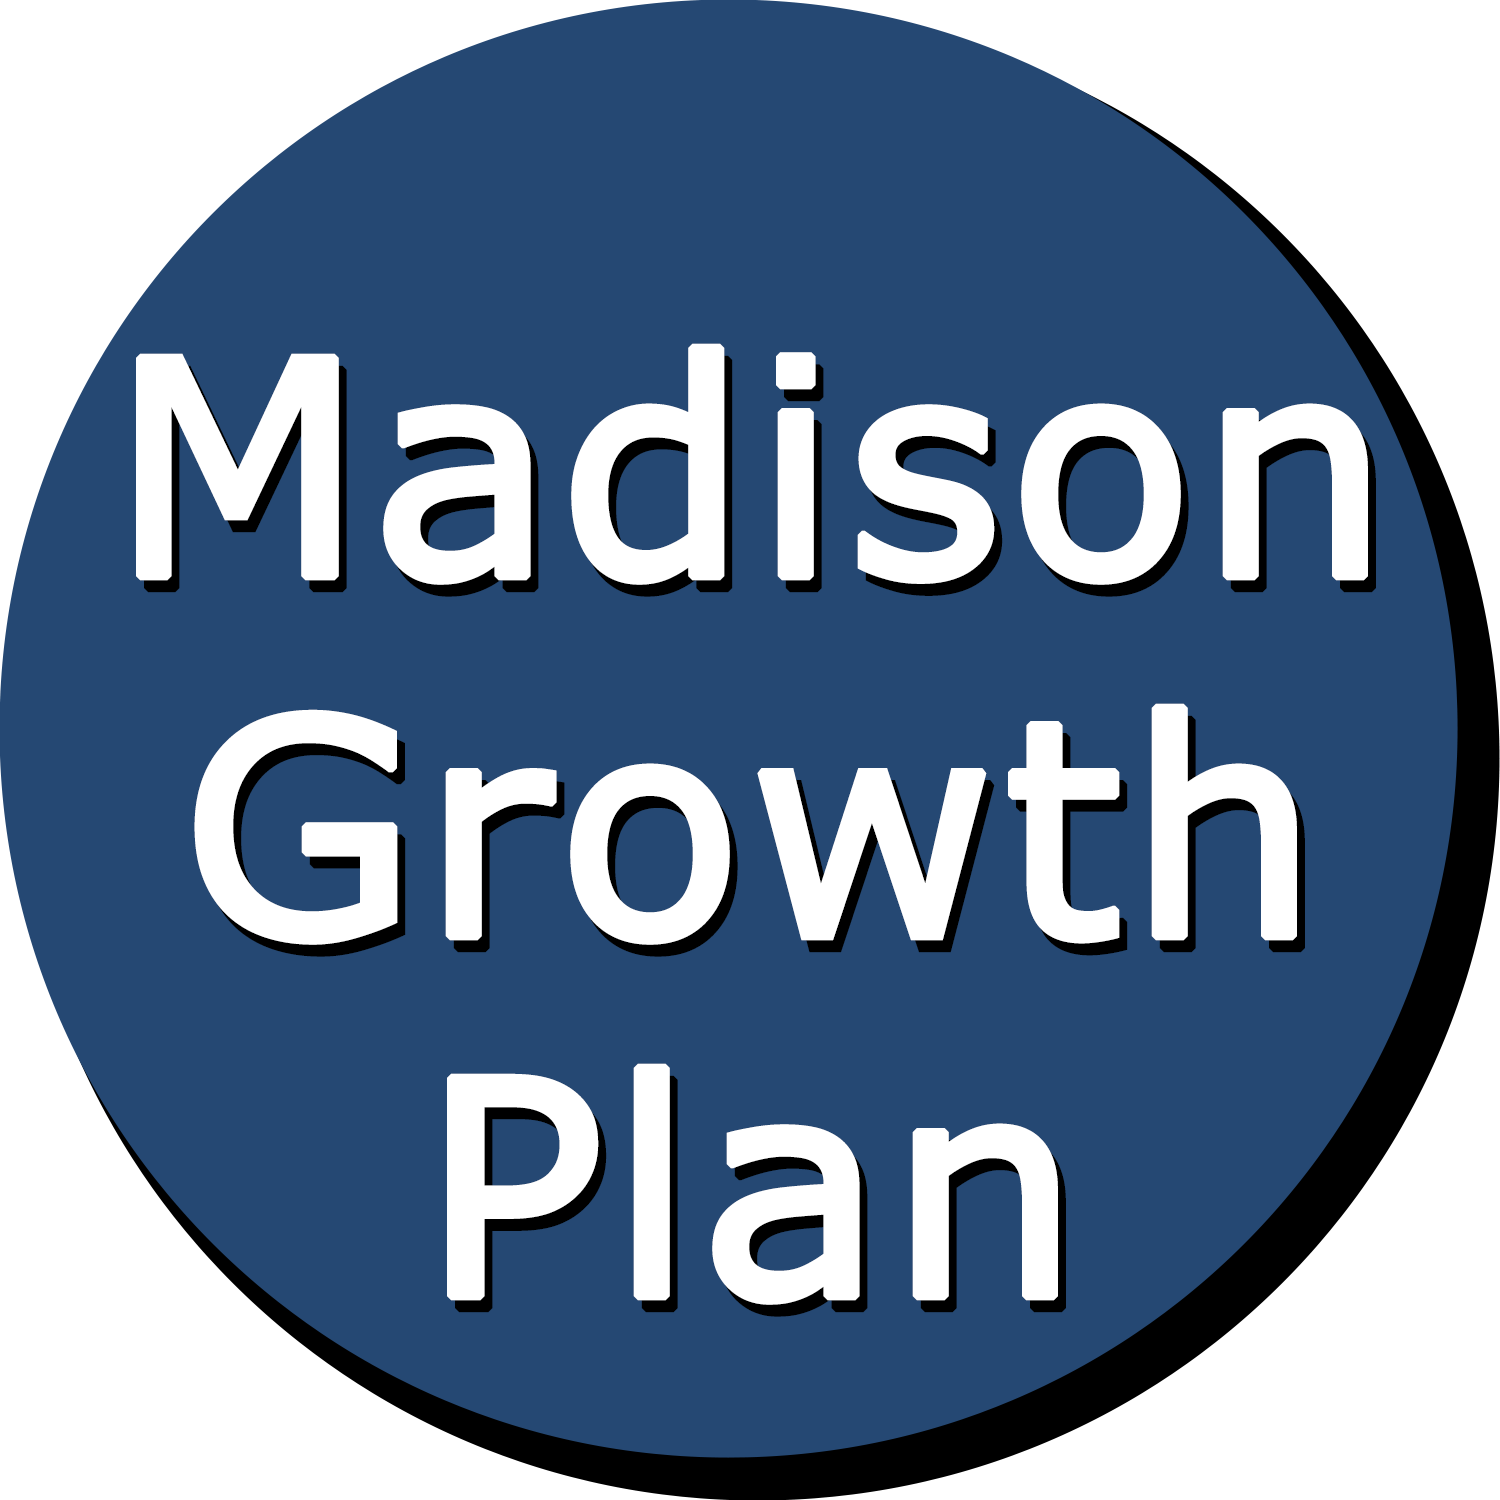 Madison Growth Plan